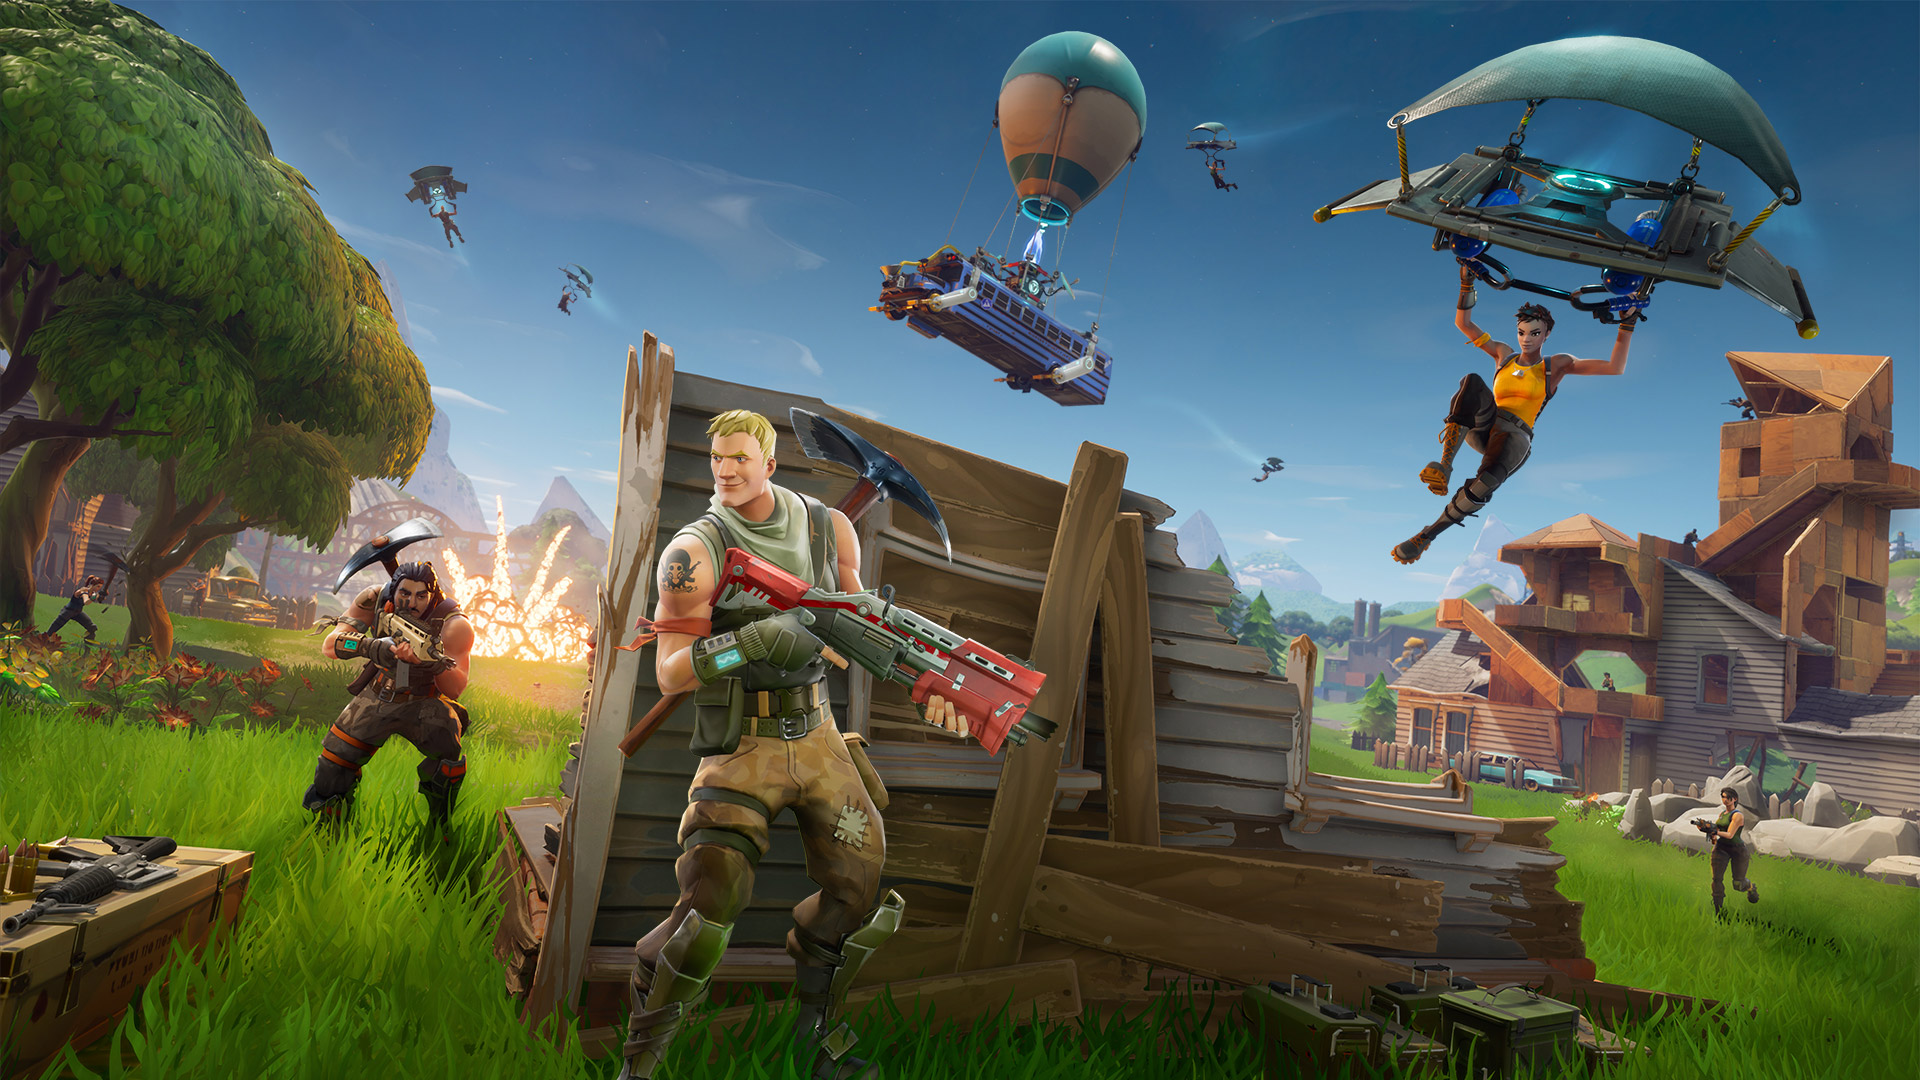 Fortnite Launched on Switch, Sony Bans Ability to Play Cross